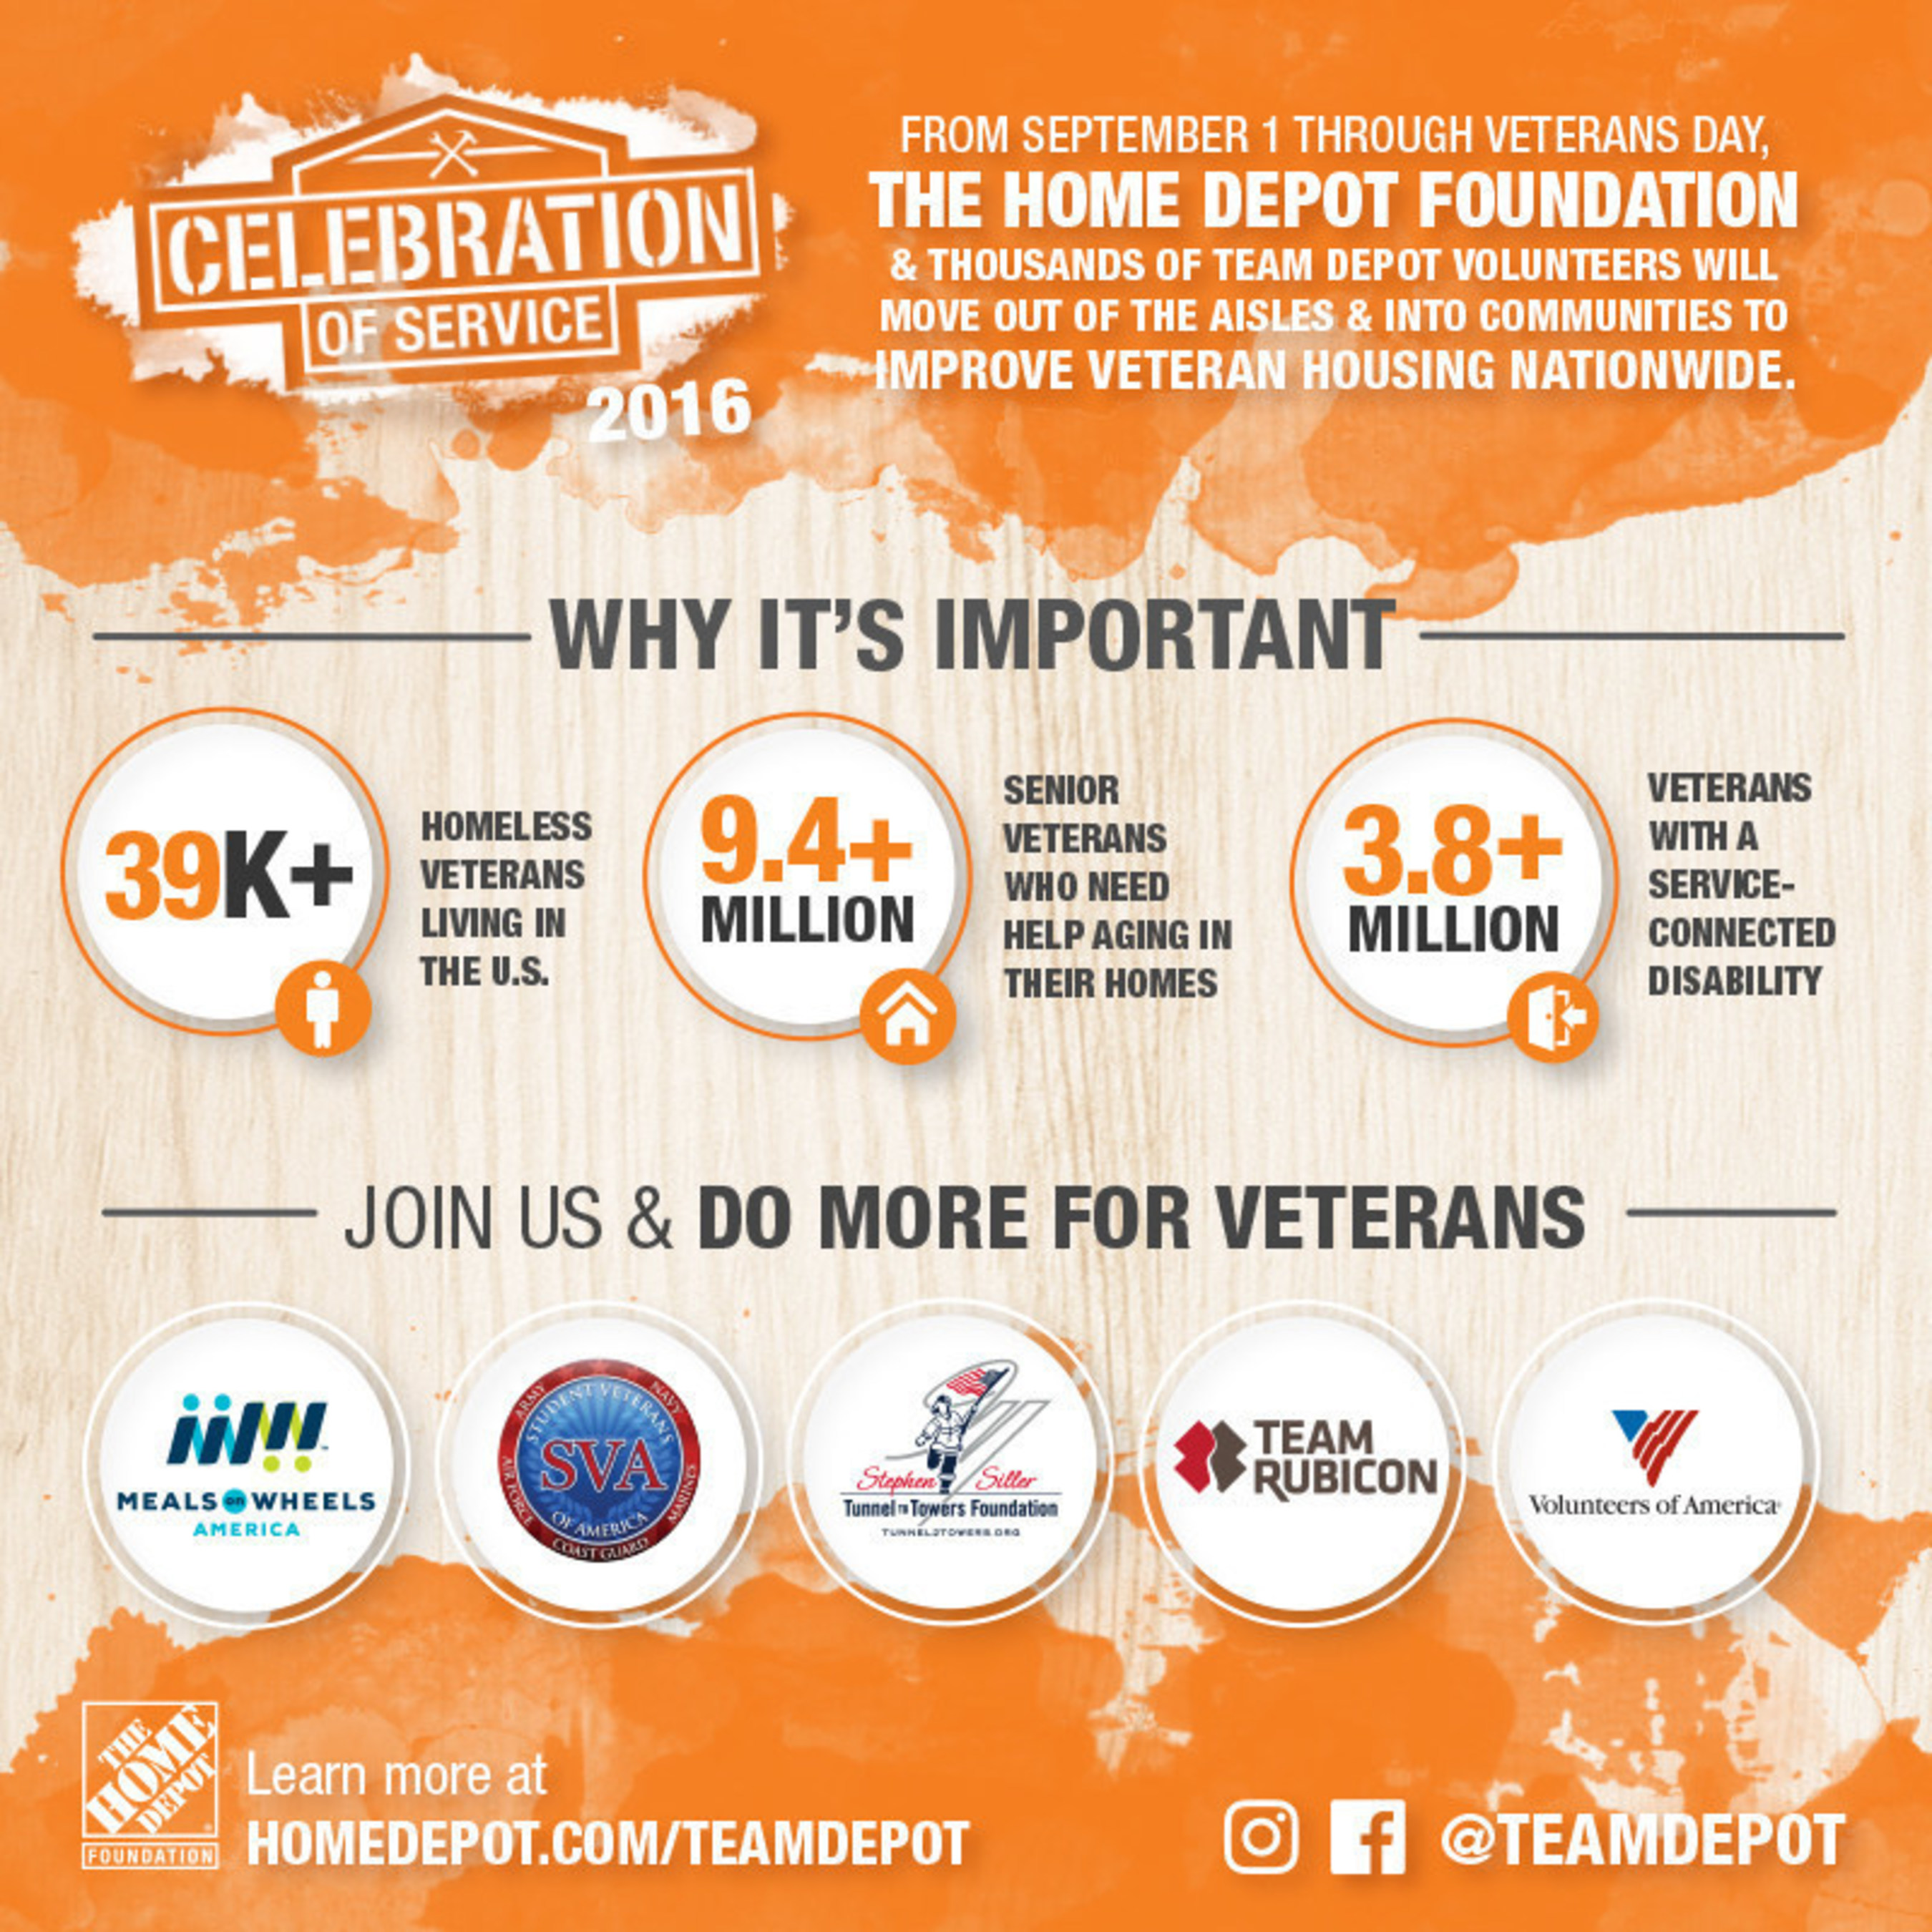 The_Home_Depot_Foundation_Infographic